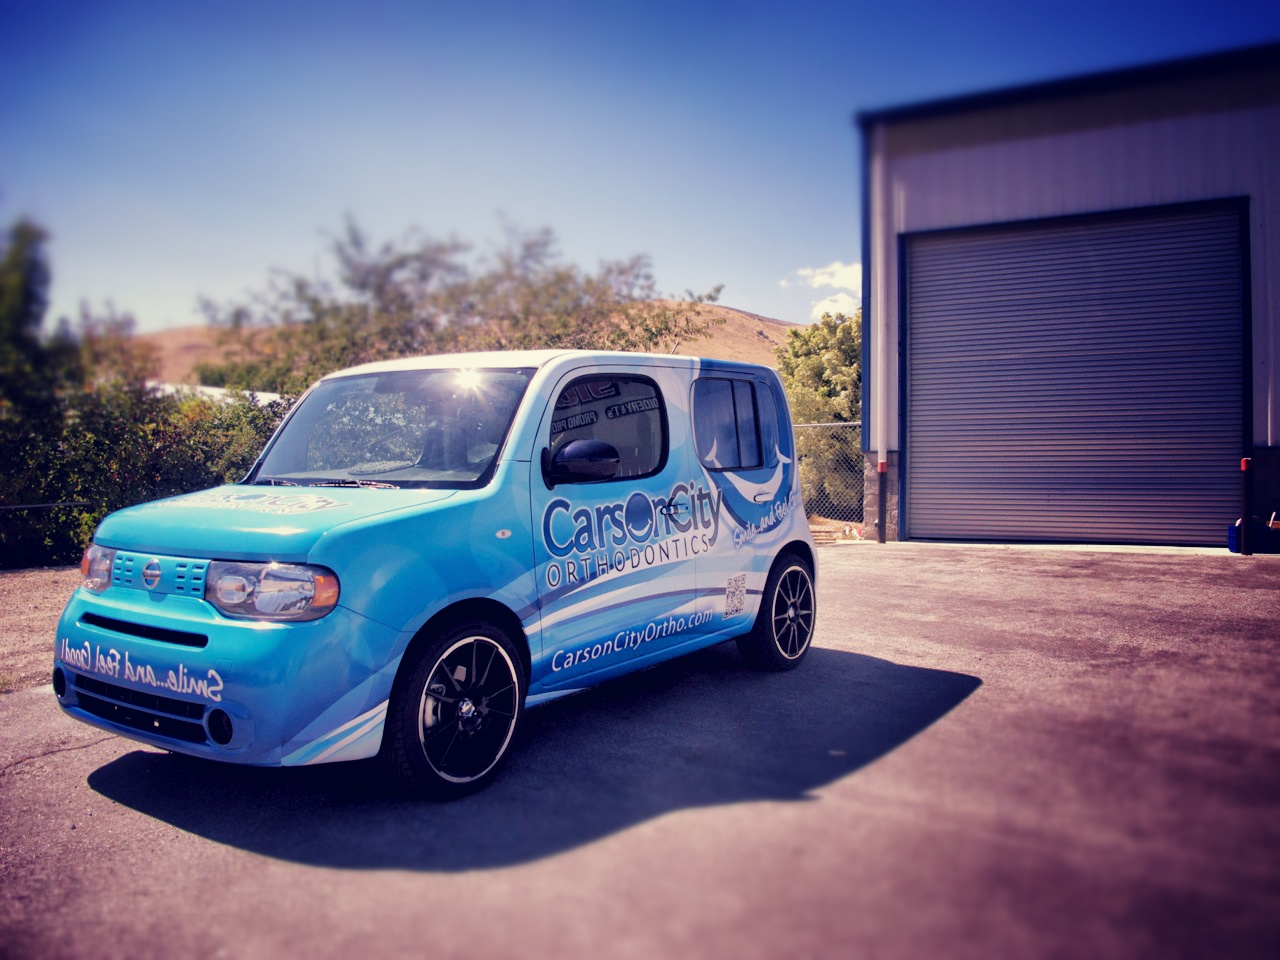 Project: Vehicle Wrap – Carson City Ortho Nissan Cube